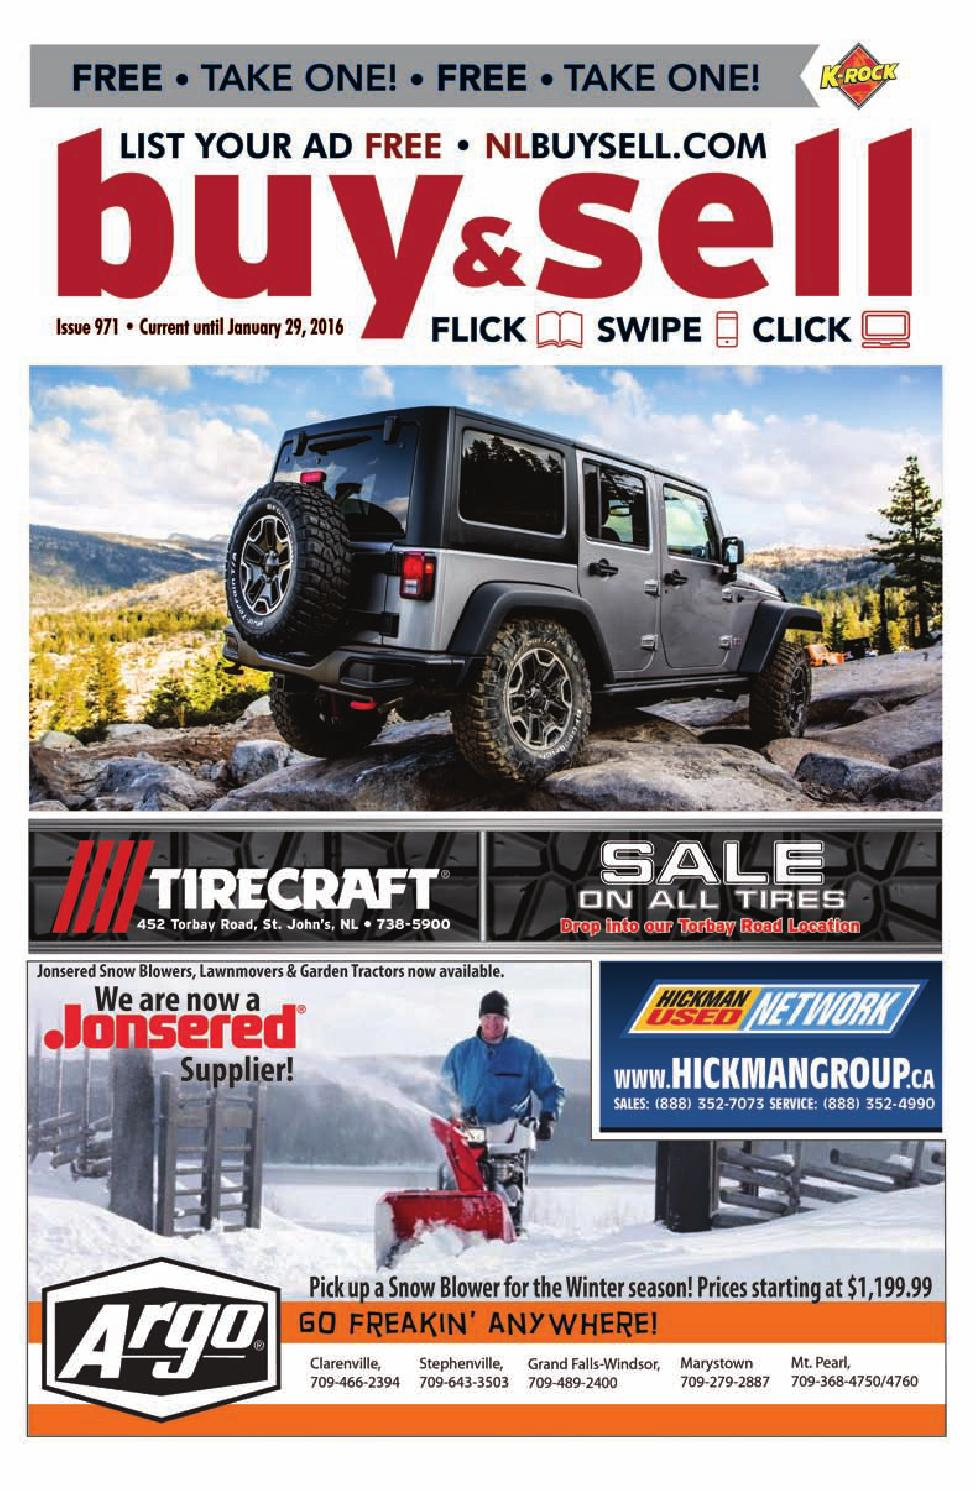 th wiring tech gm column 3989 to yj wiper motor wiring diagram the buy sell magazine issue 971 by nl buy sell issuu th wiring tech gm column 3989 to yj wiper motor